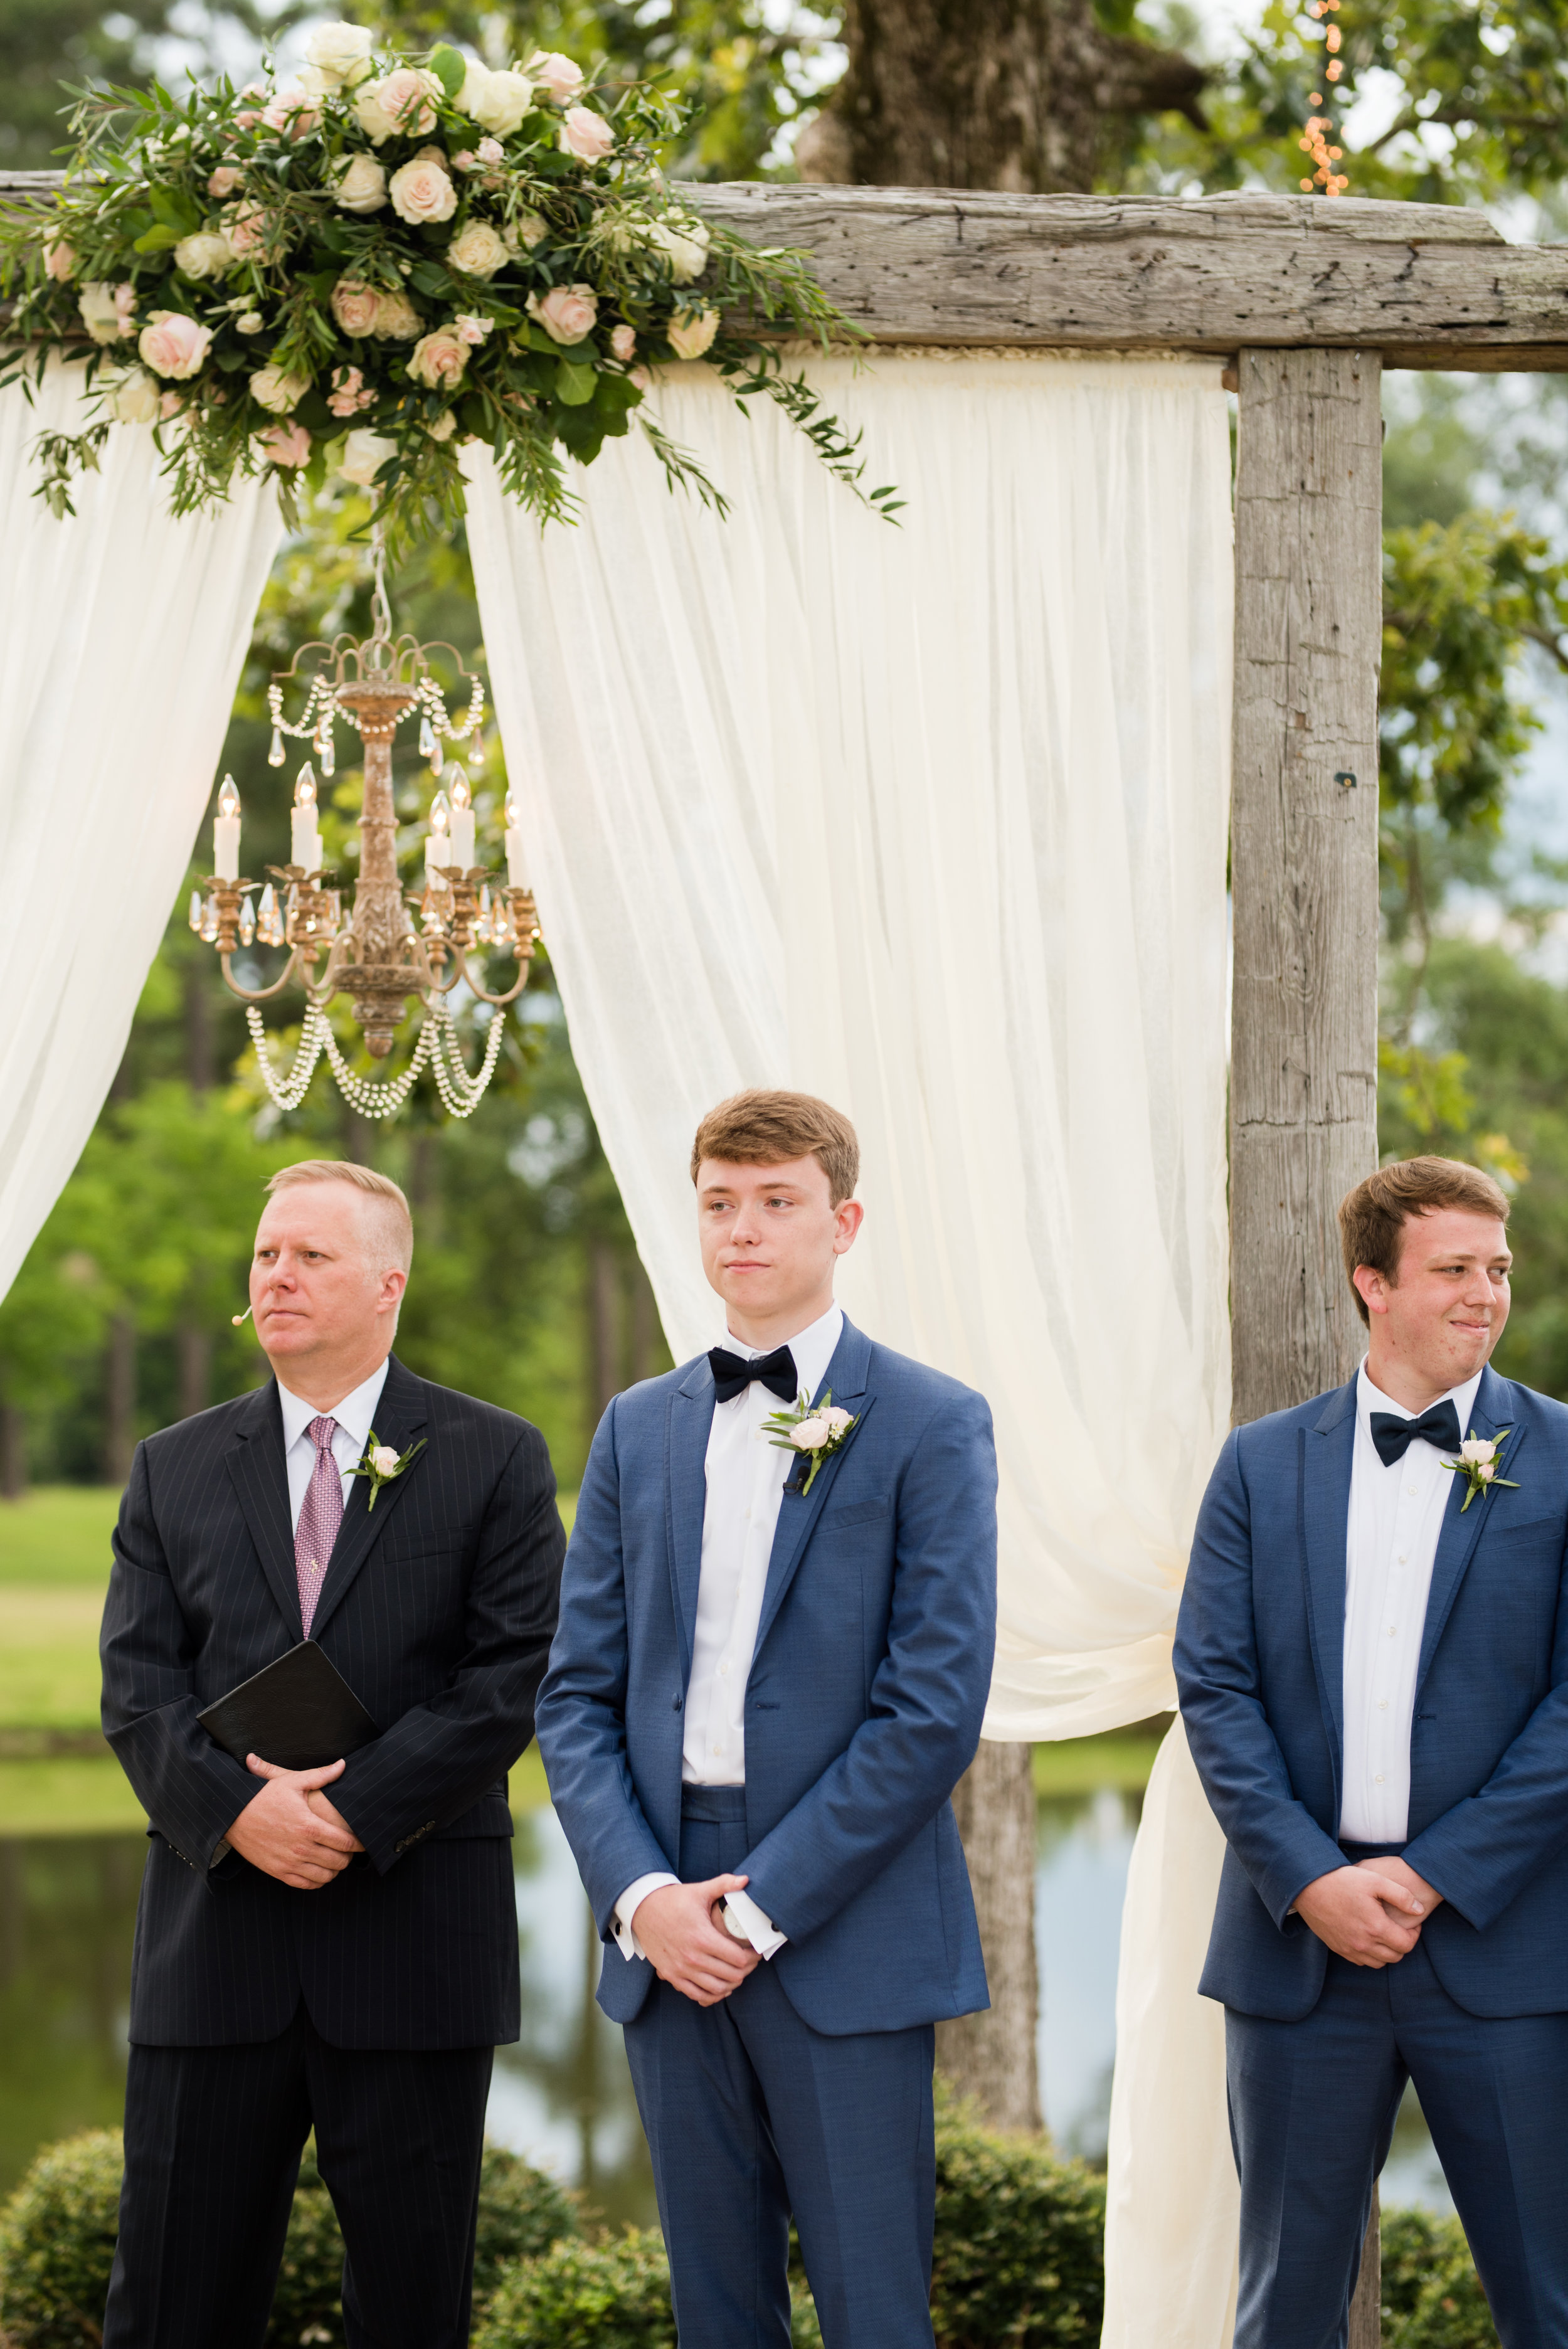 The Barn at Bridlewood wedding in Hattiesburg, Mississippi (MS) in June | Bride and Groom Wedding ceremony groom's emotional first look